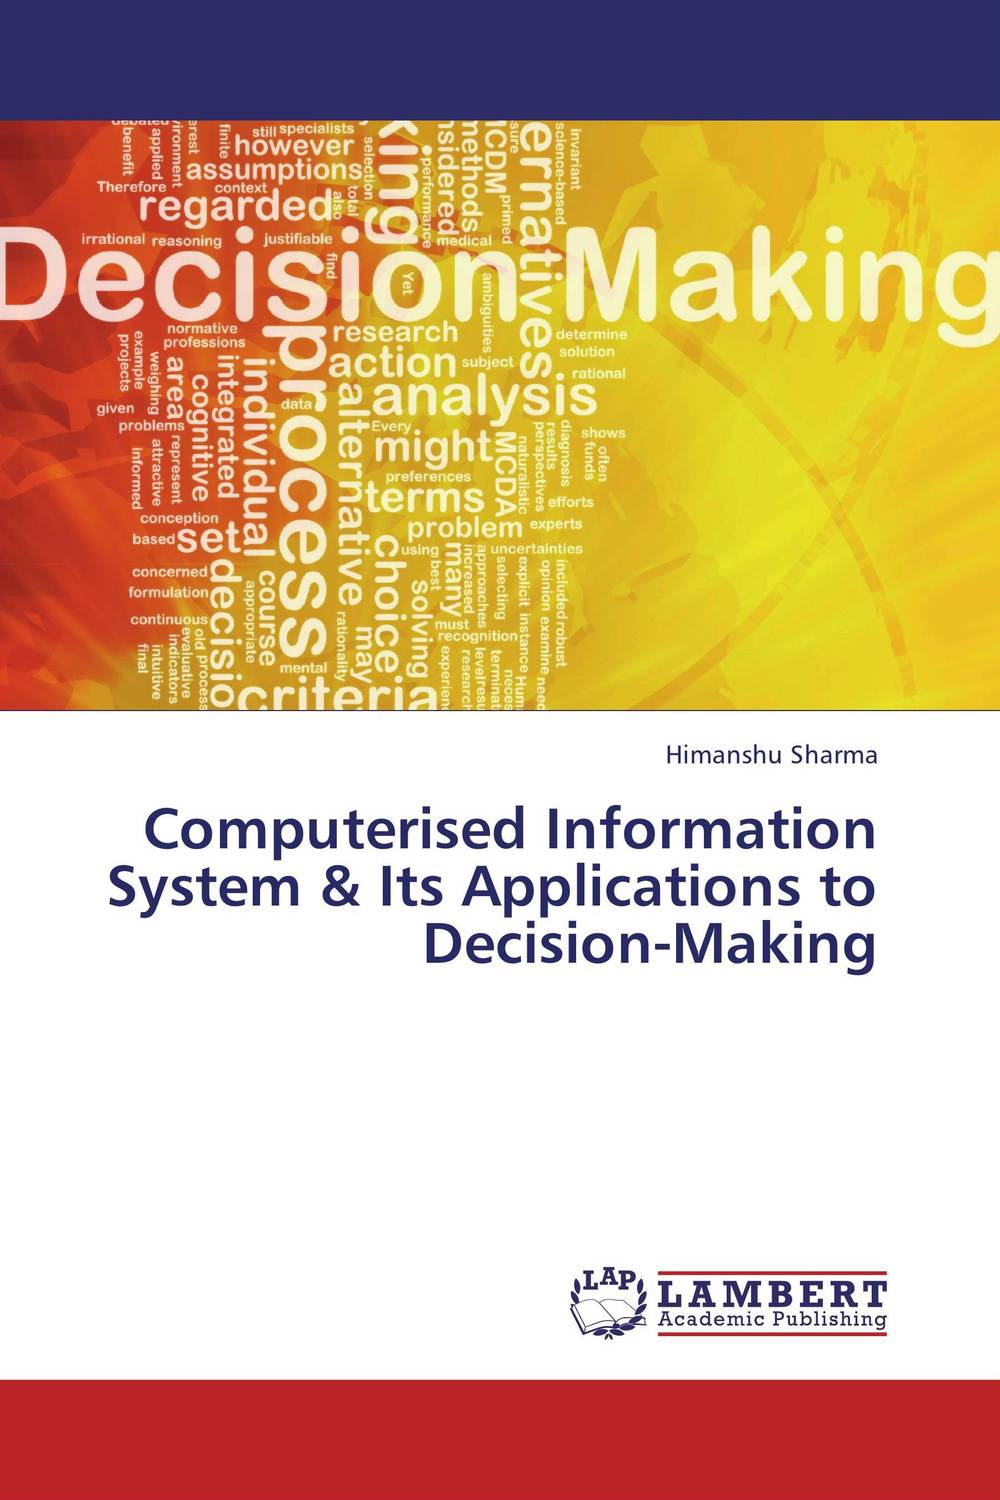 Computerised Information System & Its Applications to Decision-Making robert hillard information driven business how to manage data and information for maximum advantage